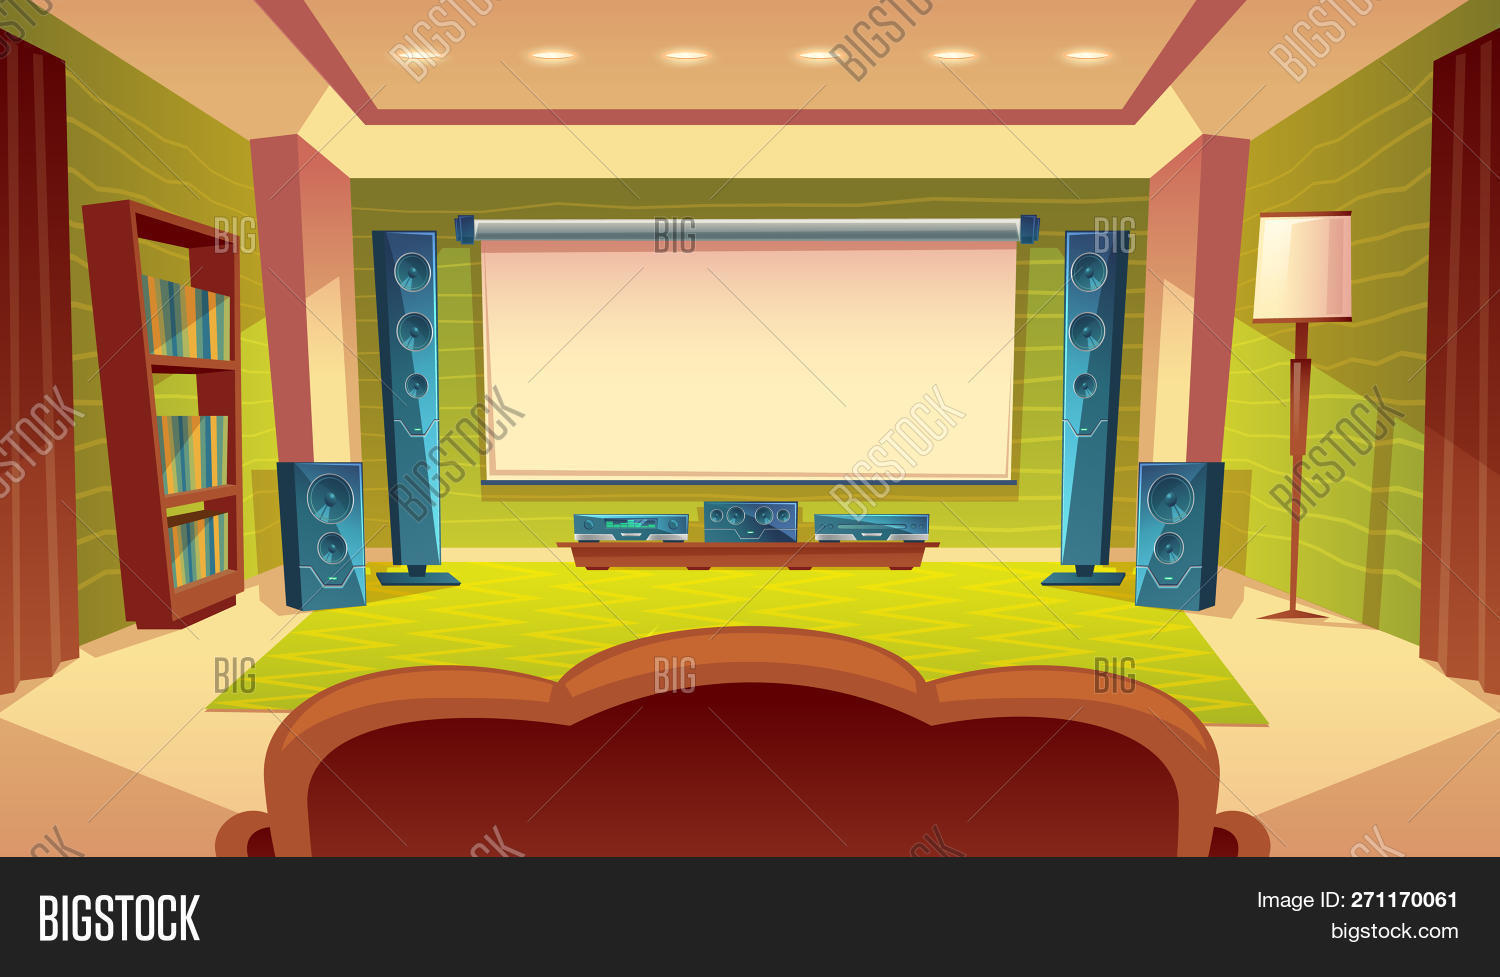 Cartoon Home Theater Image & Photo (Free Trial) | Bigstock